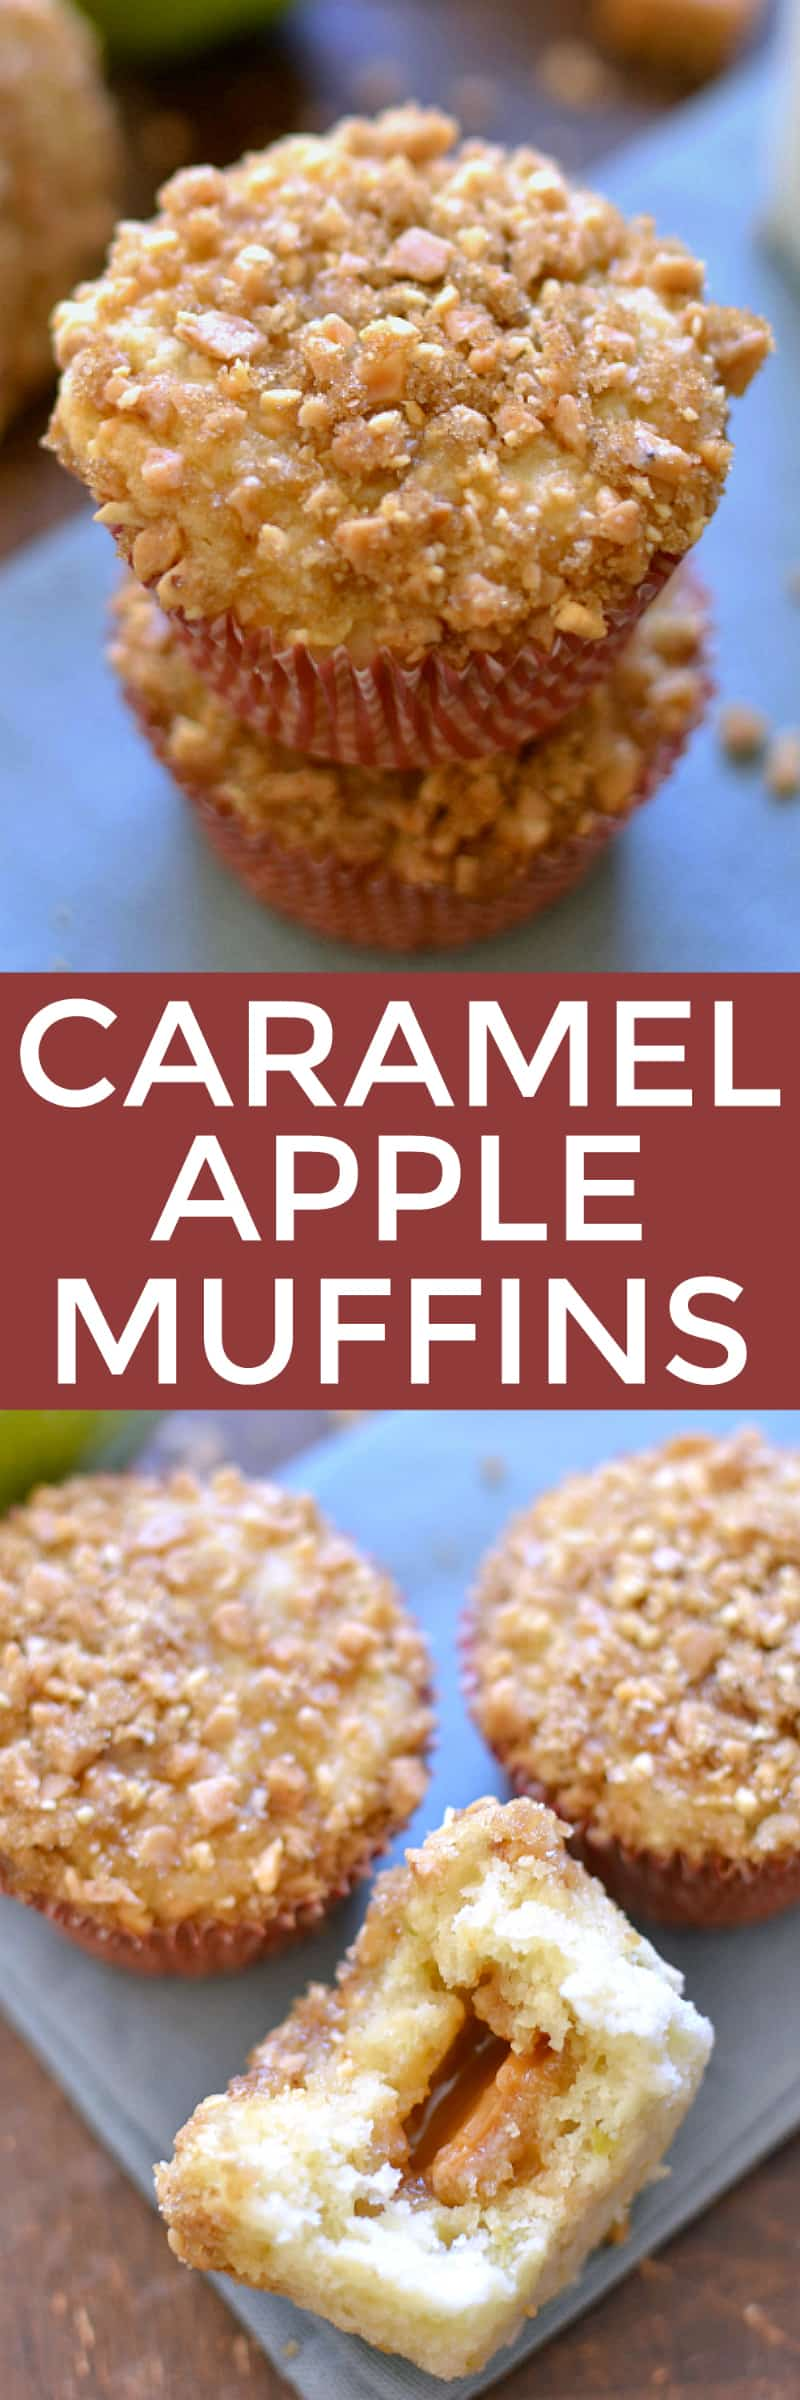 Collage image of Caramel Apple Muffins